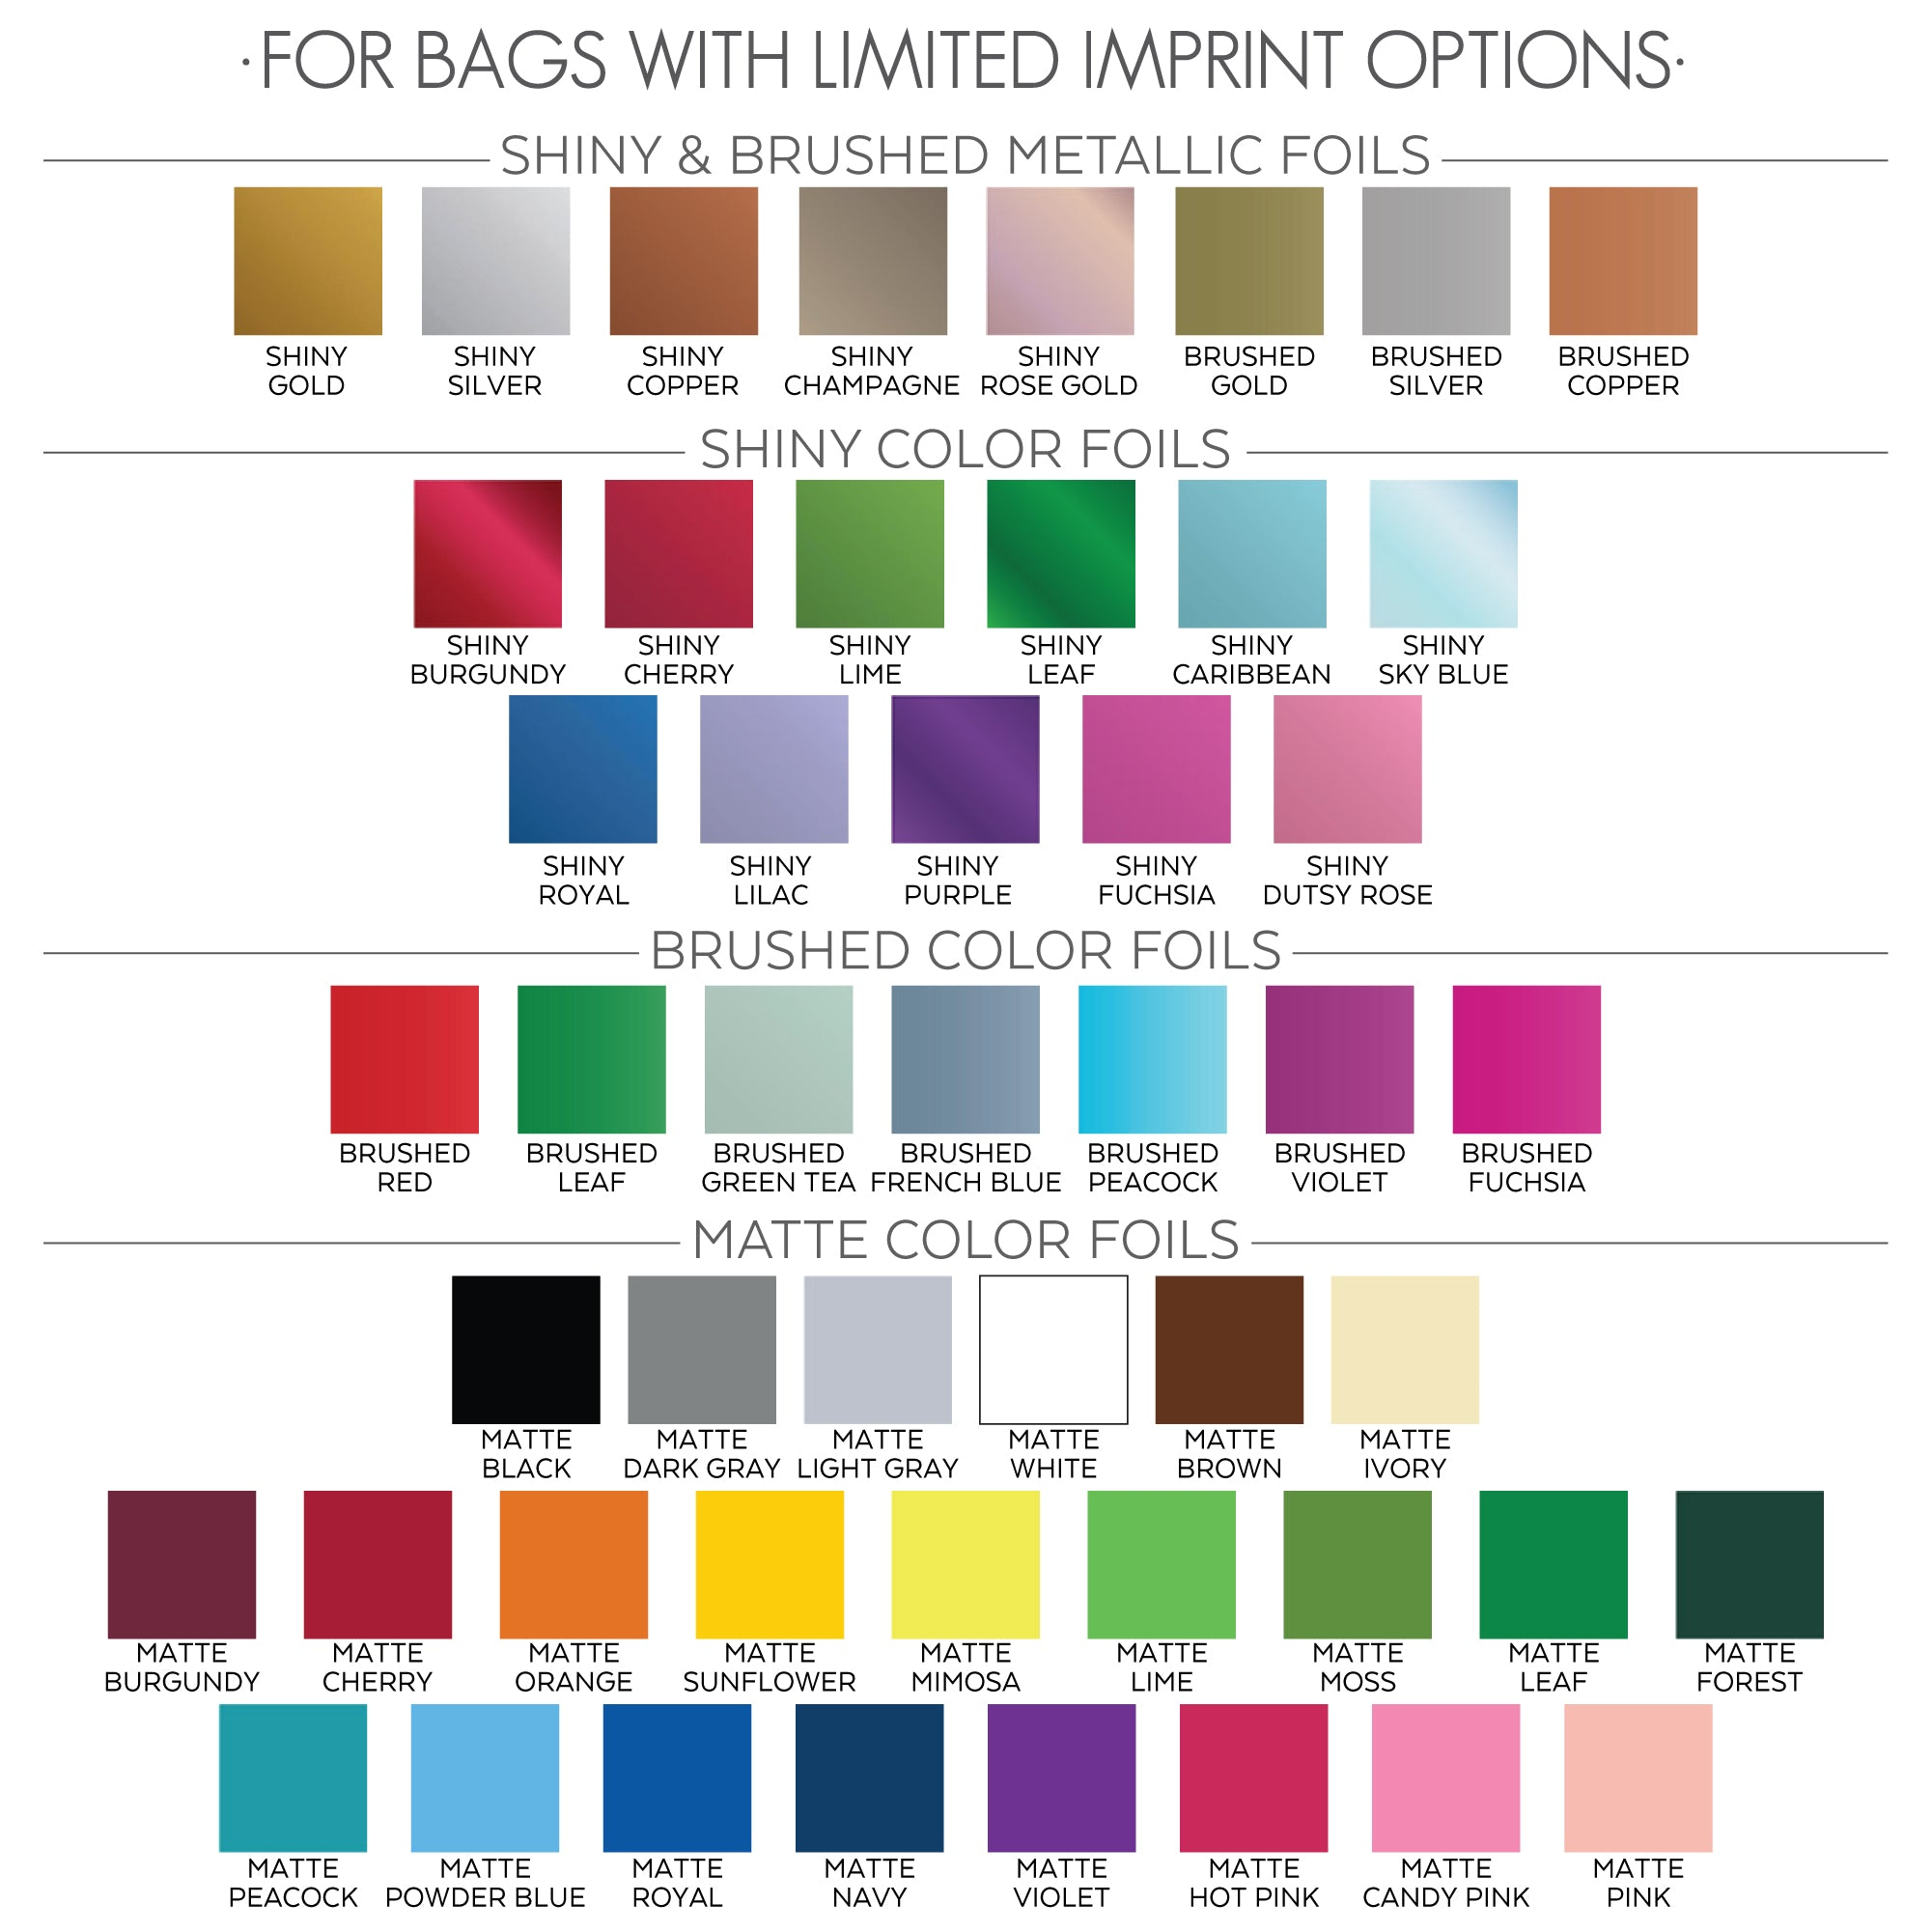 LIMITED XX FOIL OPTIONS EUROTOTE